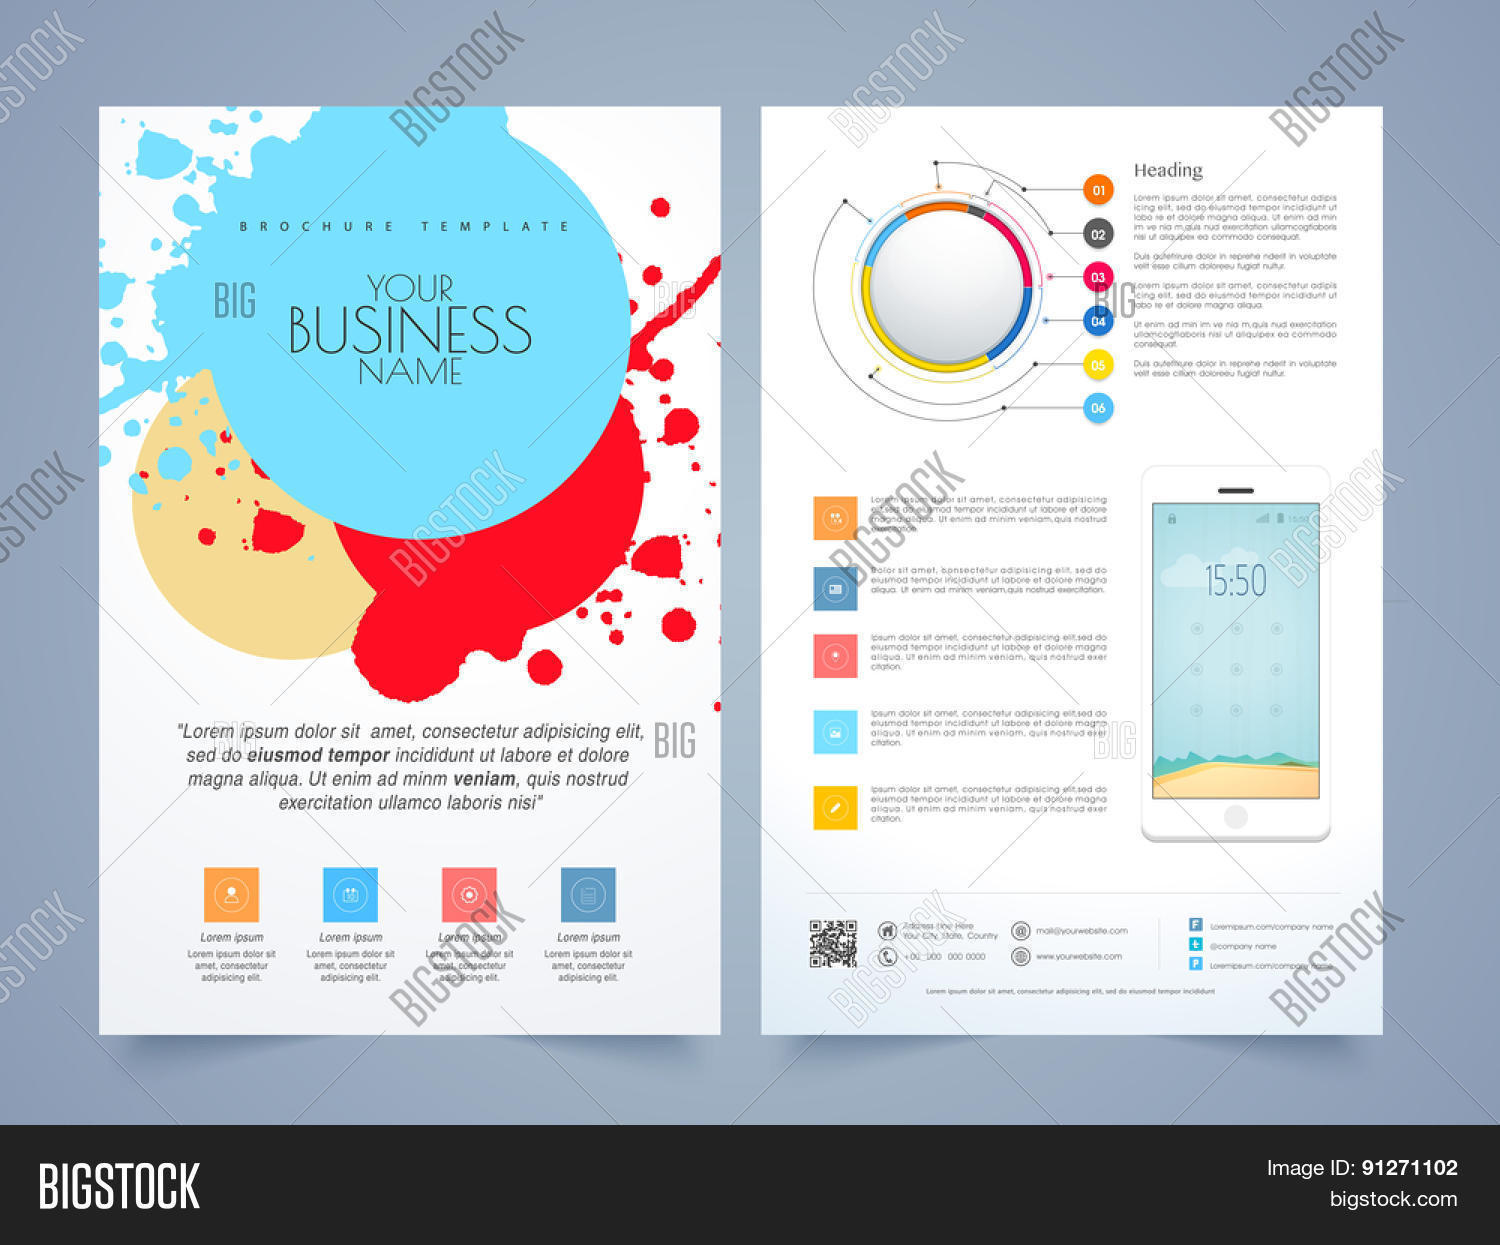 Fine 10 Best Resumes Thin 10 Label Template Regular 1099 Form Template 13b Porting Templates Youthful 16 Team Bracket Template Orange1st Birthday Invite Templates Creative Infographic Flyer, Template Or Brochure Design For ..